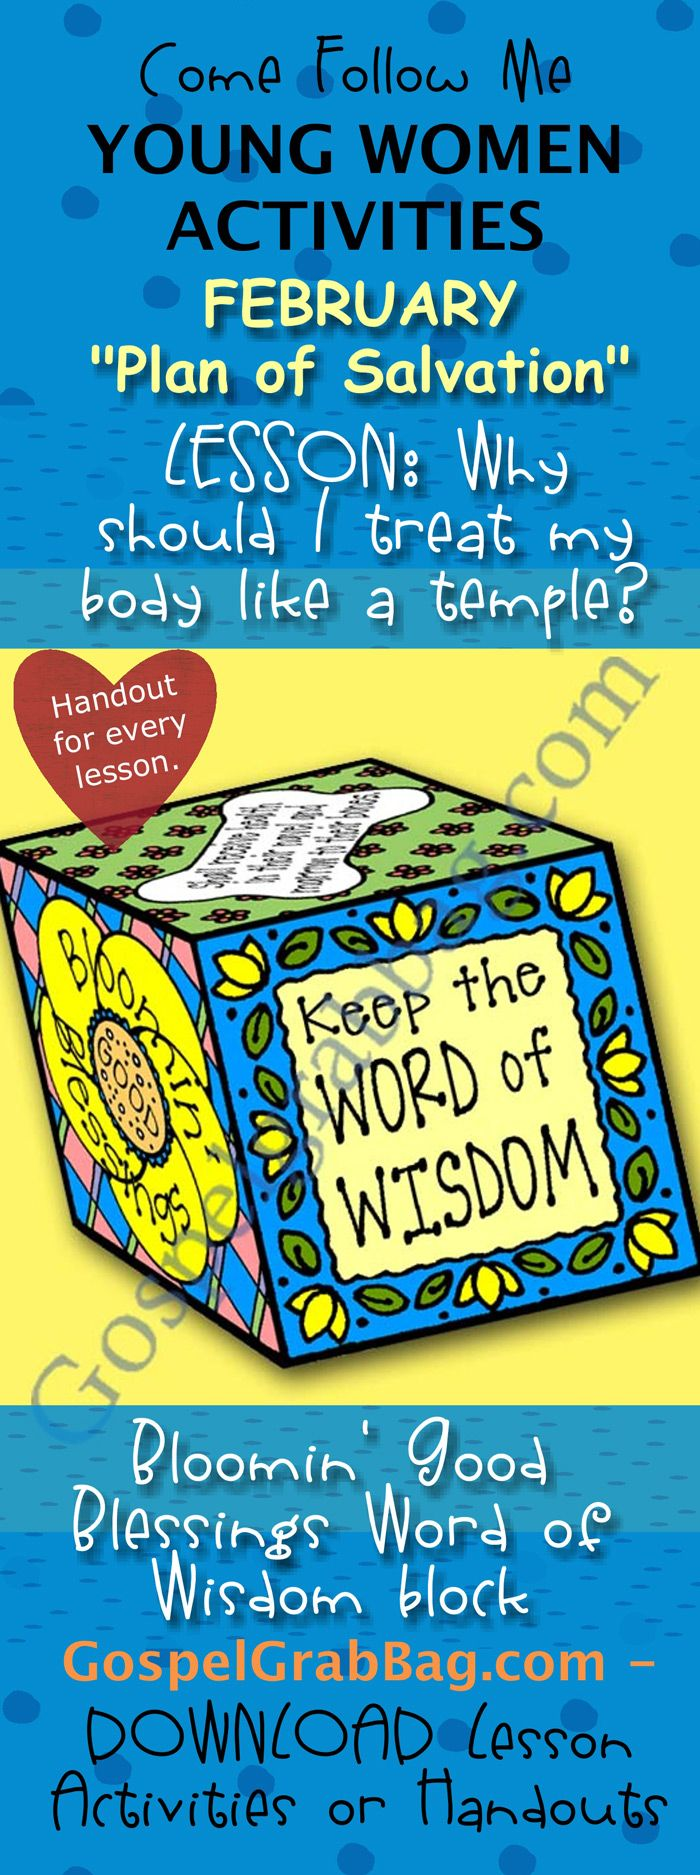 BODY IS A TEMPLE – WORD OF WISDOM: Come Follow Me – LDS Young Women Activities, February Theme: The Plan of Salvation, Lesson Topic #7: Why should I treat my body like a temple? handout for every lesson, ACTIVITY: Bloomin' Good Blessings Word of Wisdom block, Gospel grab bag – handouts to download from gospelgrabbag.com